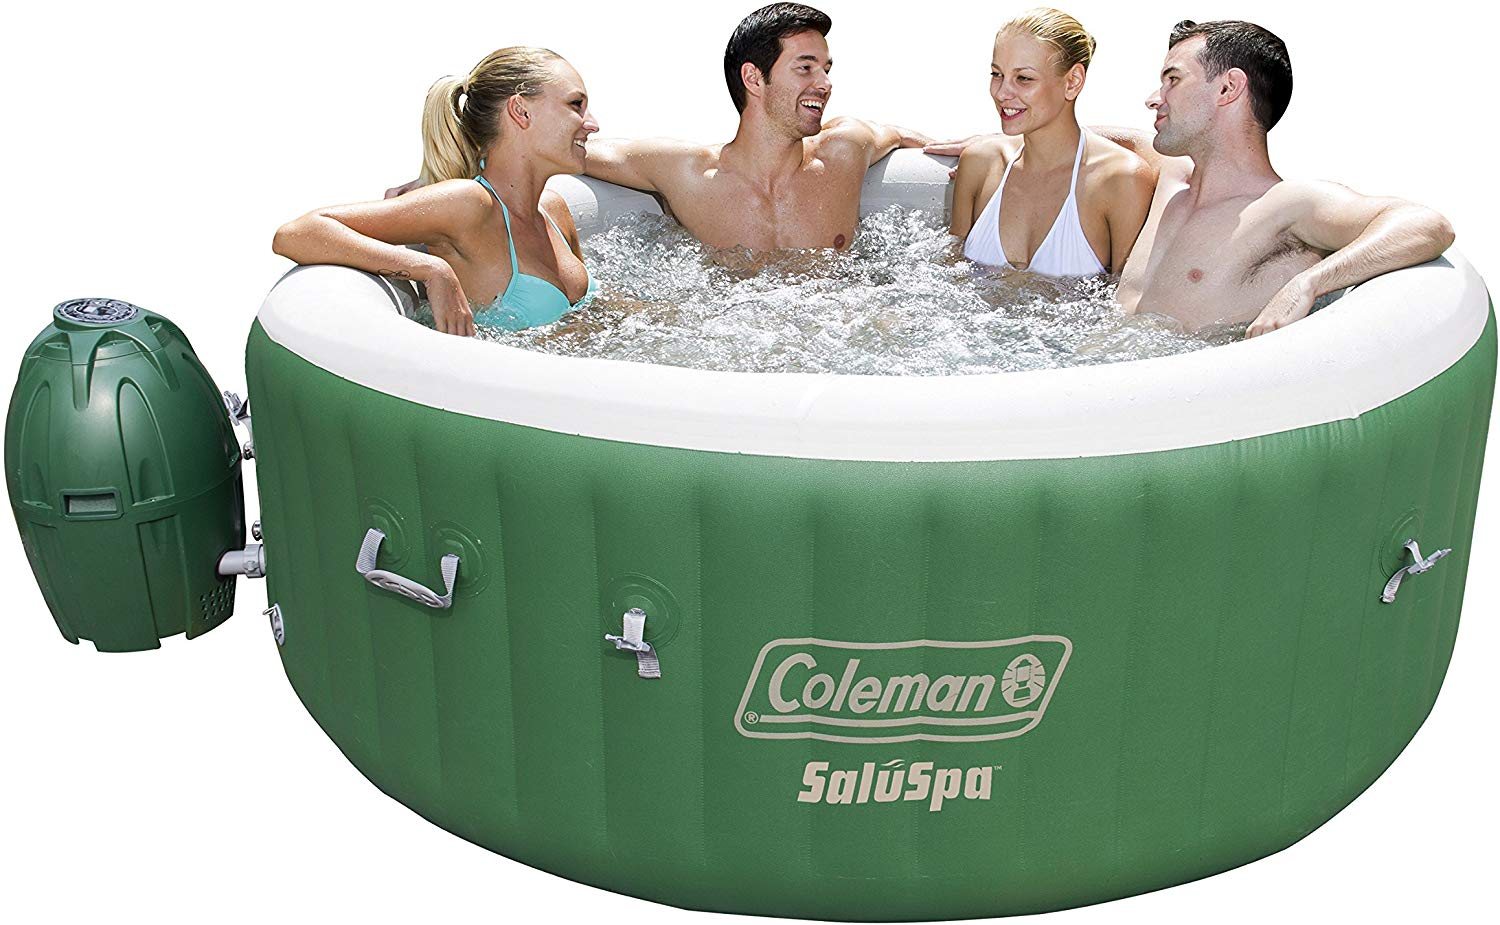 Coleman saluspa inflatable hot tub spa, green and white